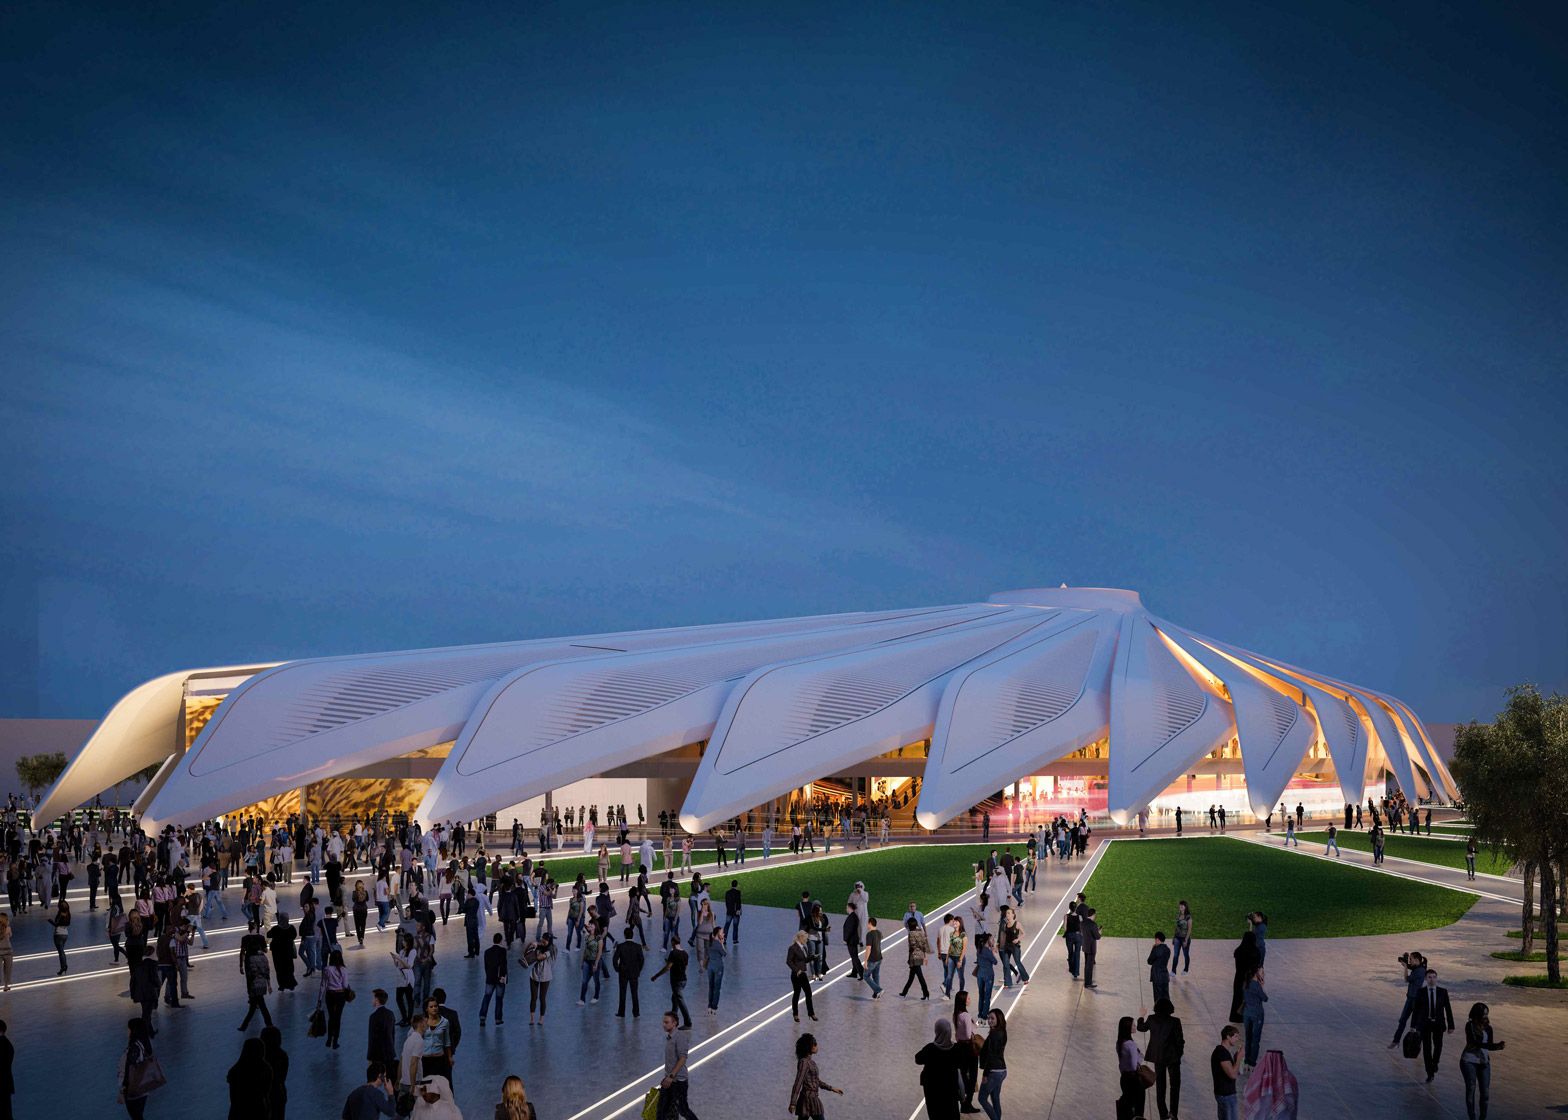 Santiago Calatrava designs UAE Pavilion for Dubai World Expo 2020 84